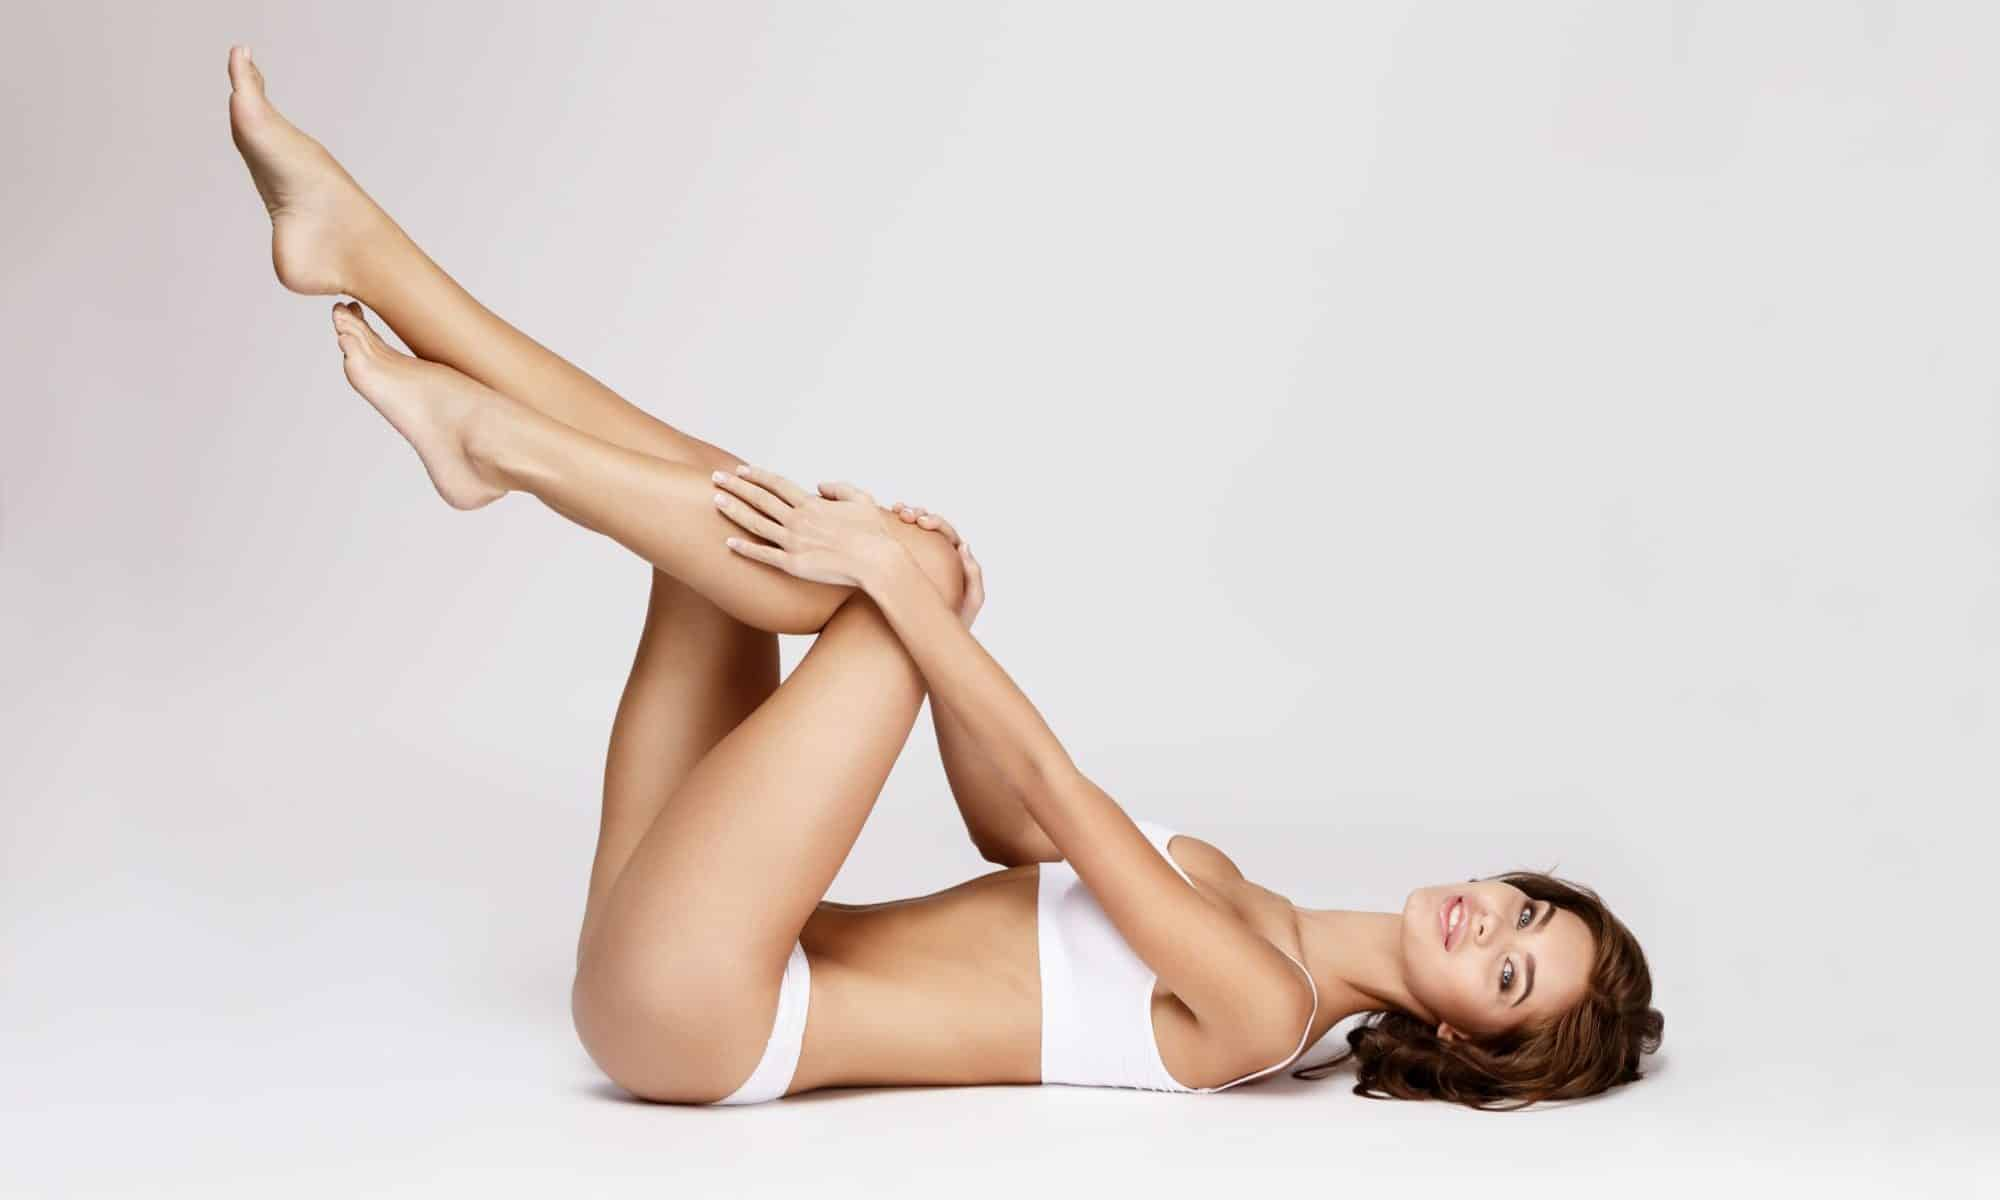 Tampa Temple Terrace Laser Hair Removal Alma Harmony Top